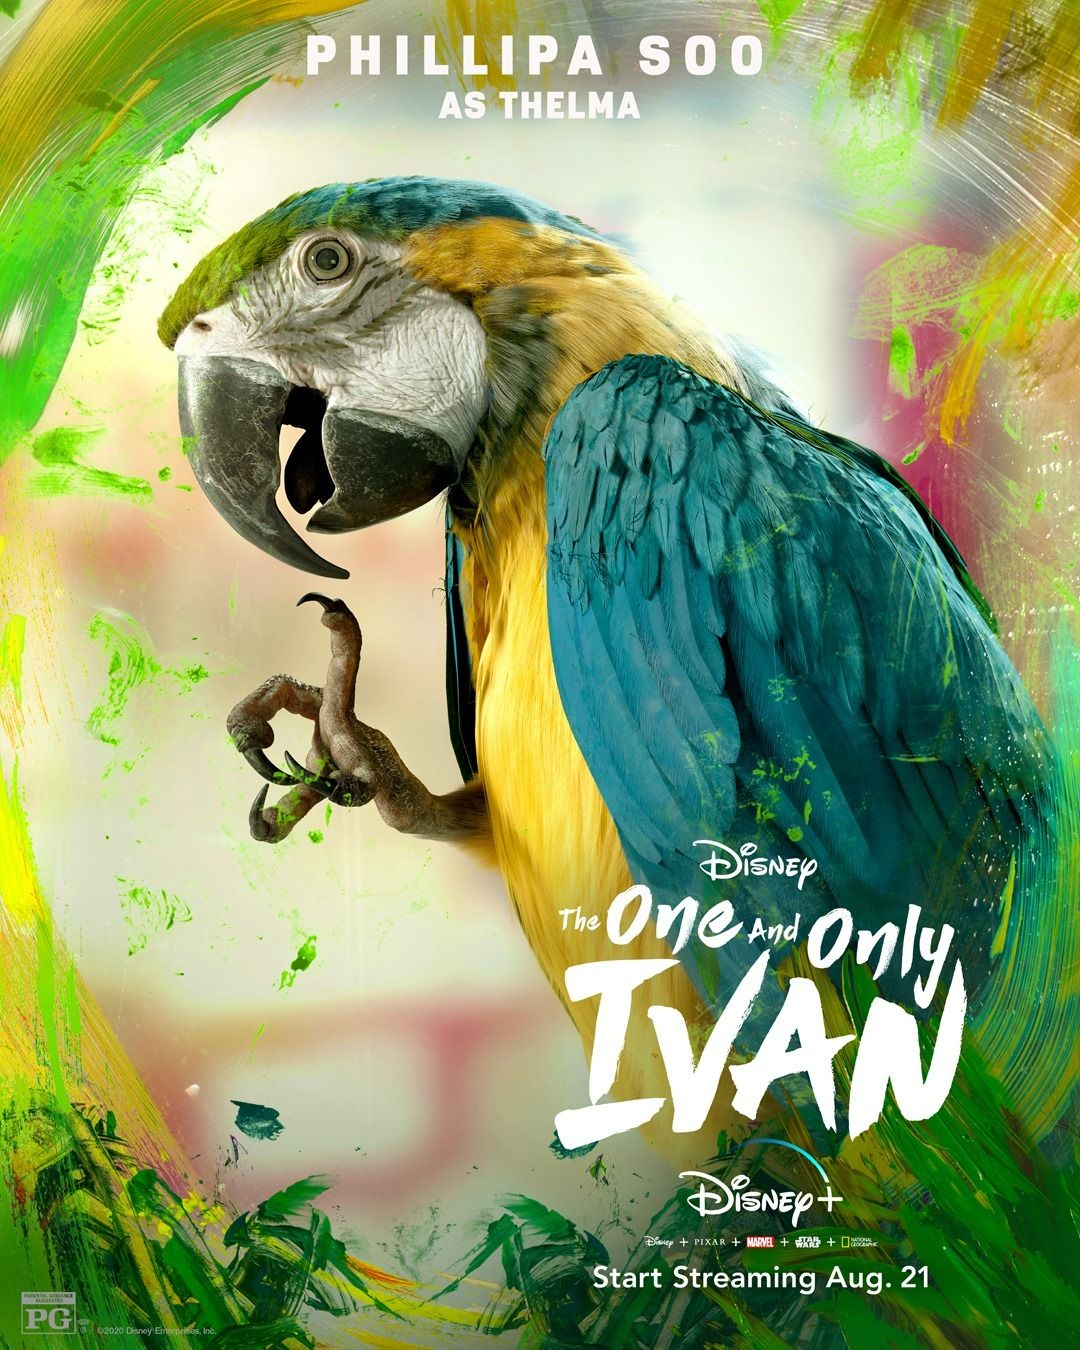 The One and Only Ivan Poster 11: Extra Large Poster Image